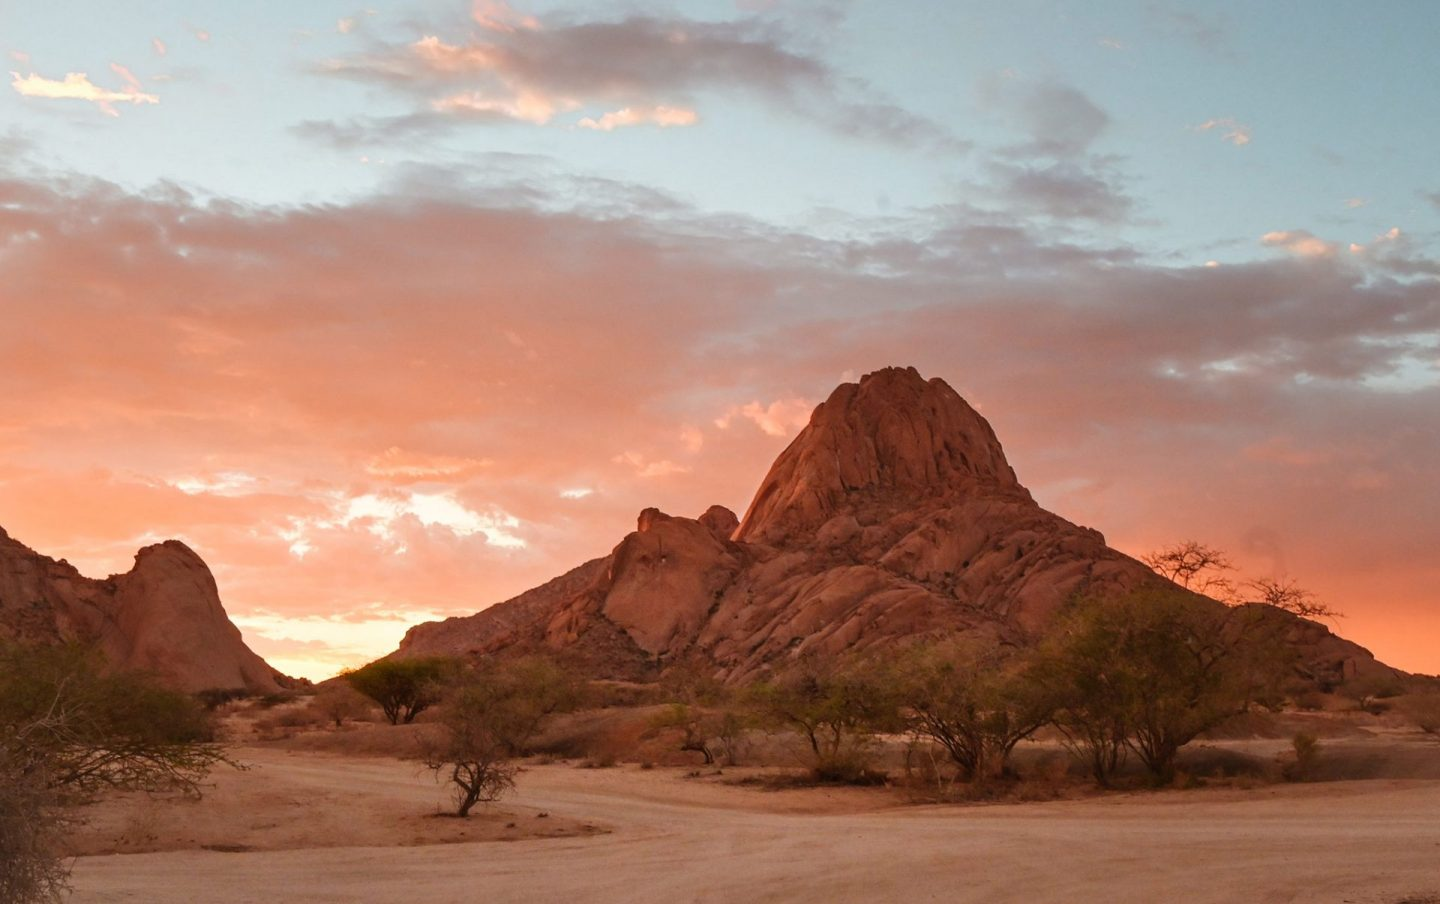 Sunset at Spitzkoppe, Namibia